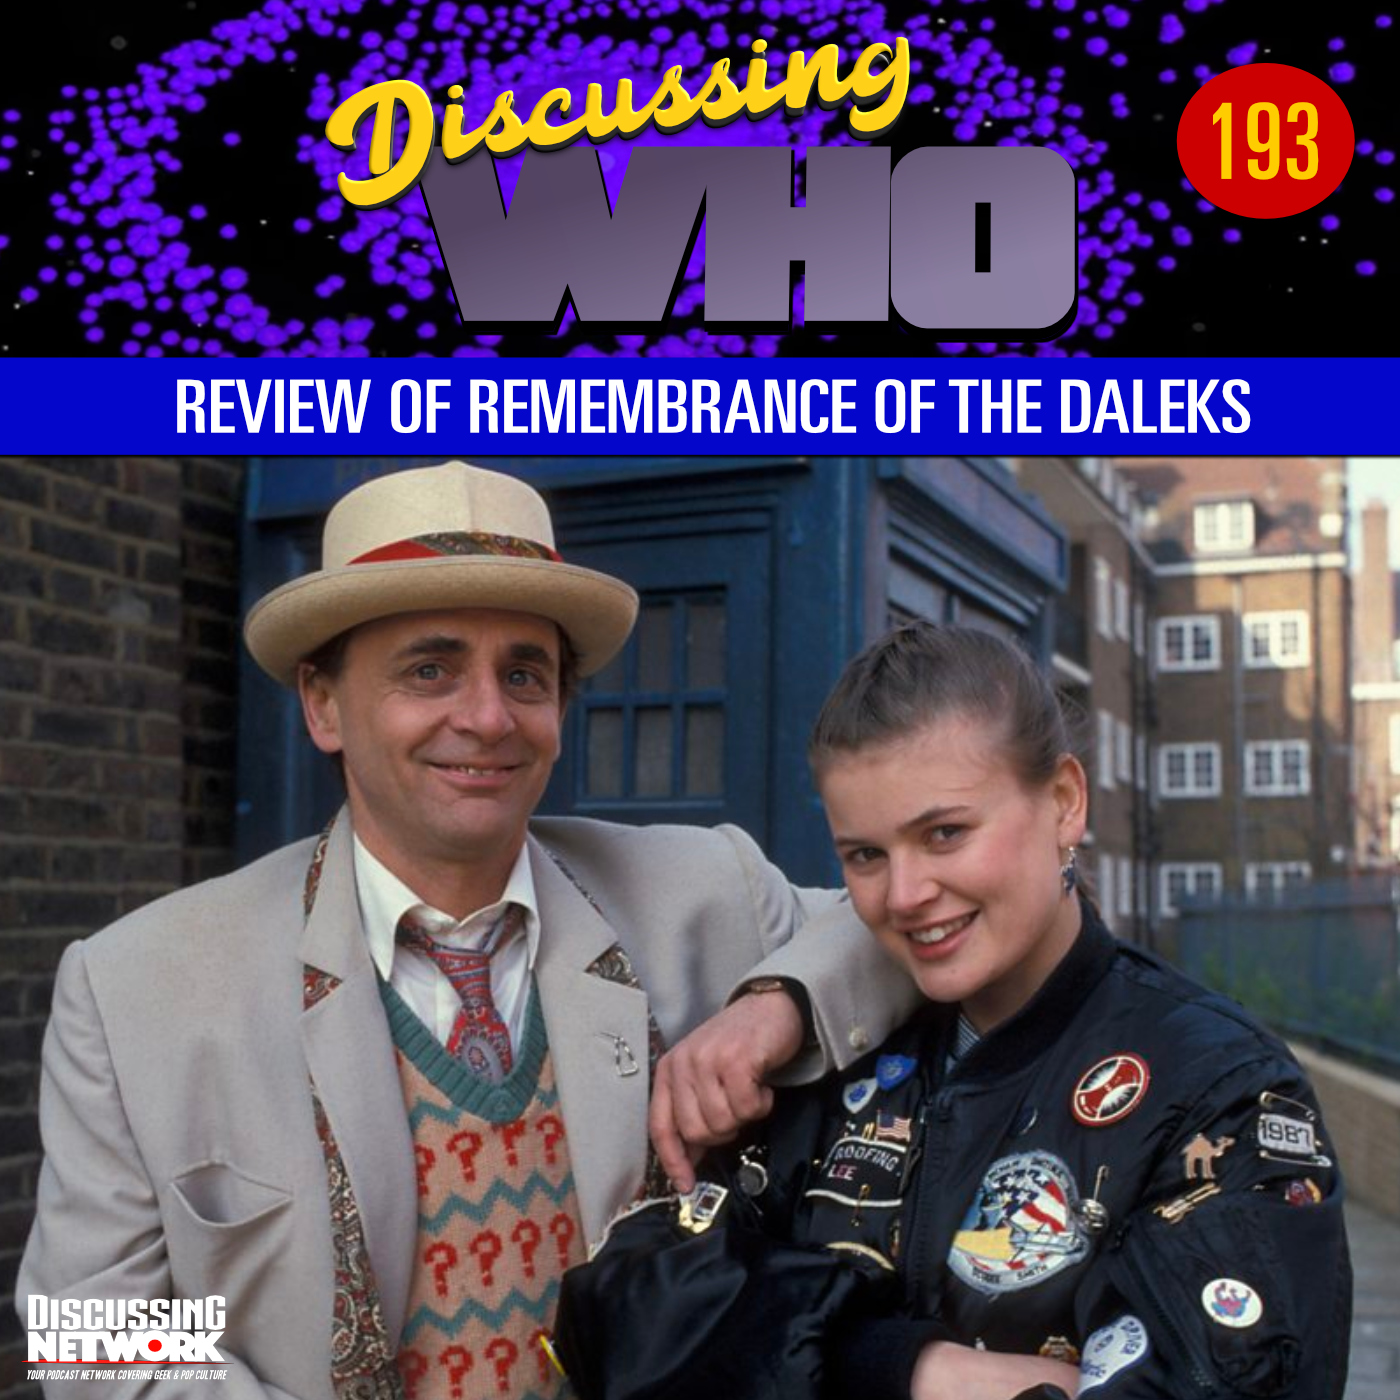 Discussing Who Episode 193 Review of Remembrance of the Daleks